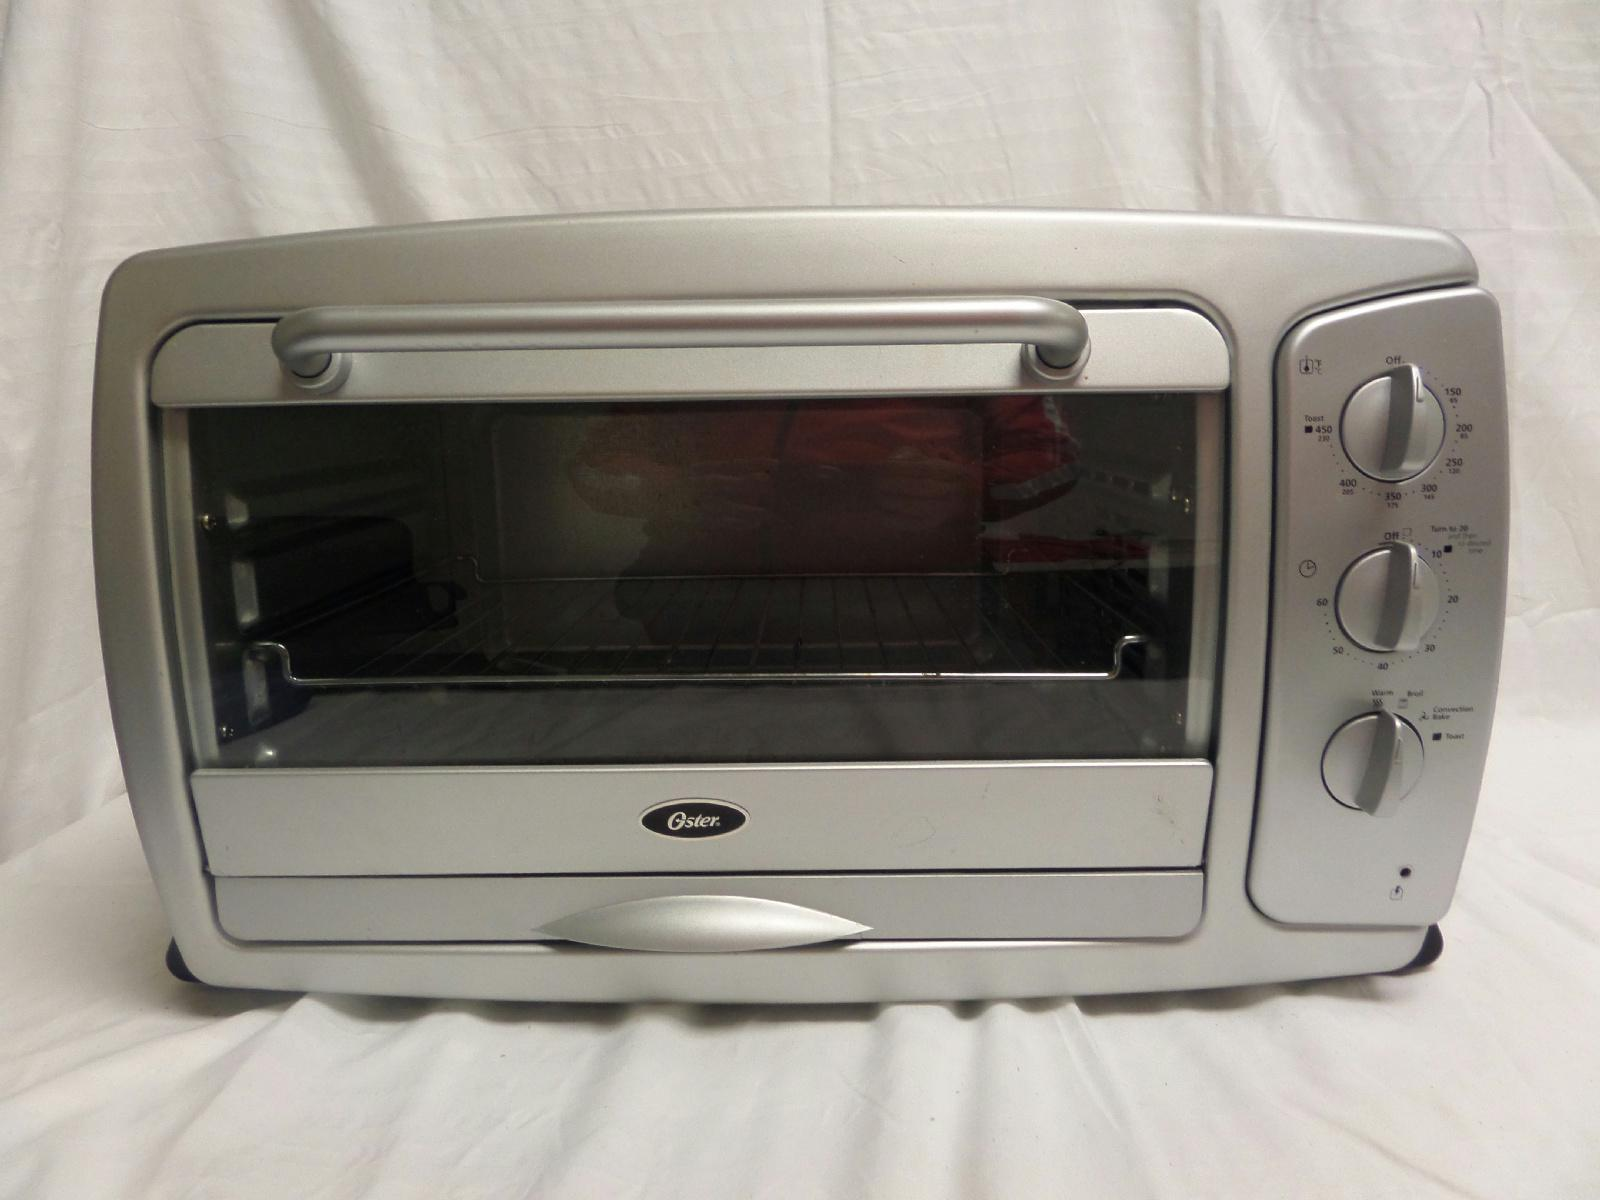 Oven Toaster: Manual For Oster Toaster Oven